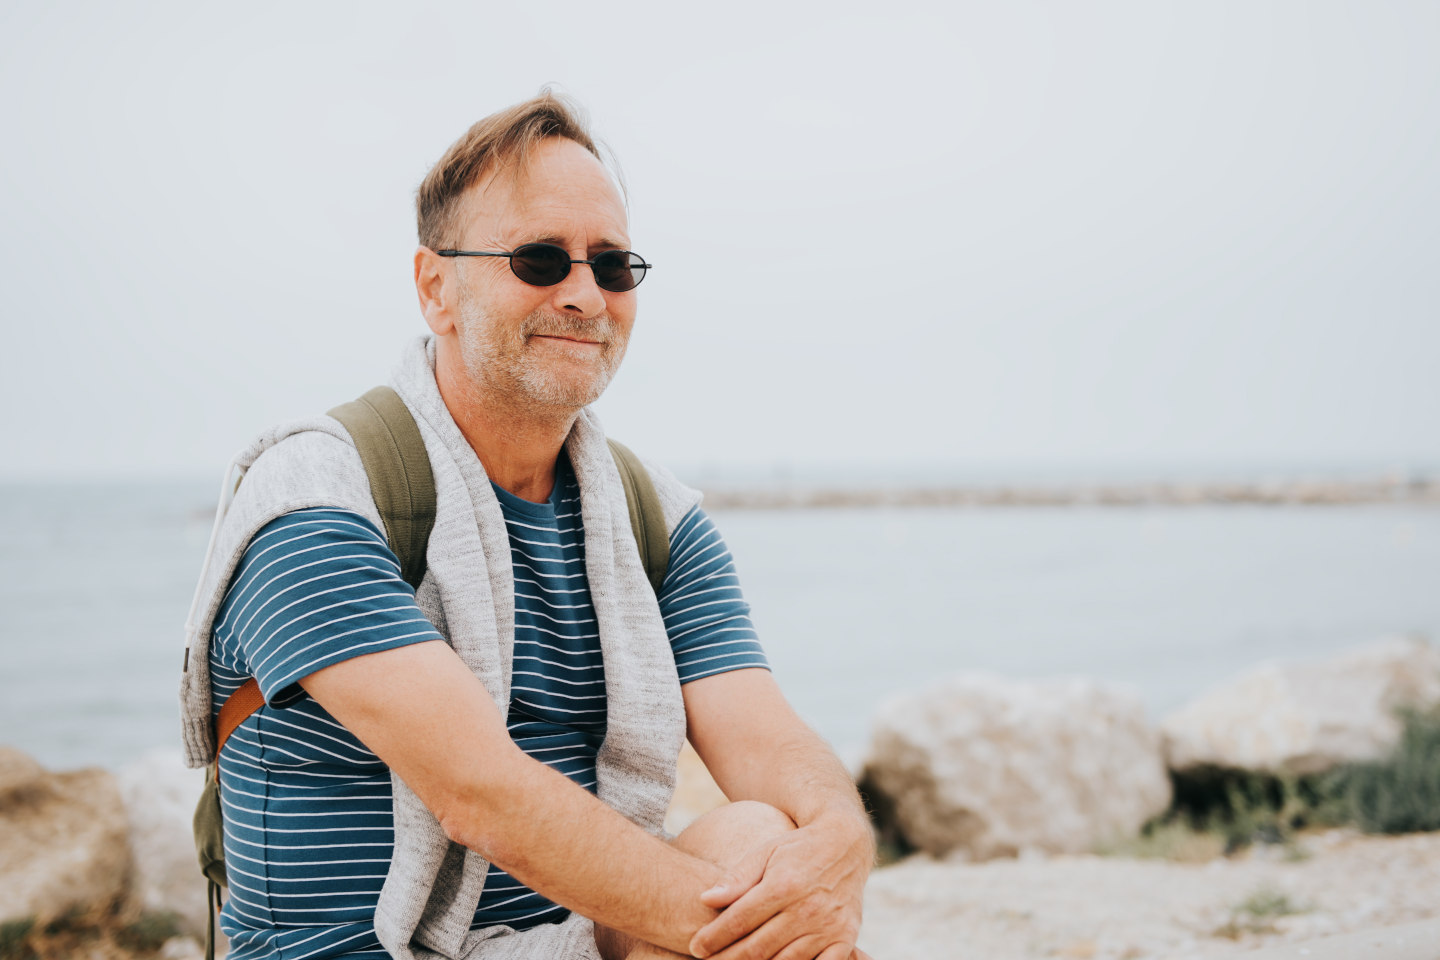 Man enjoying summer vacation by the sea, wearing stripe nautical t-shirt and backpack. Image taken in Saintes-Maries-de-la-Mer, capital of Camargue, south of France